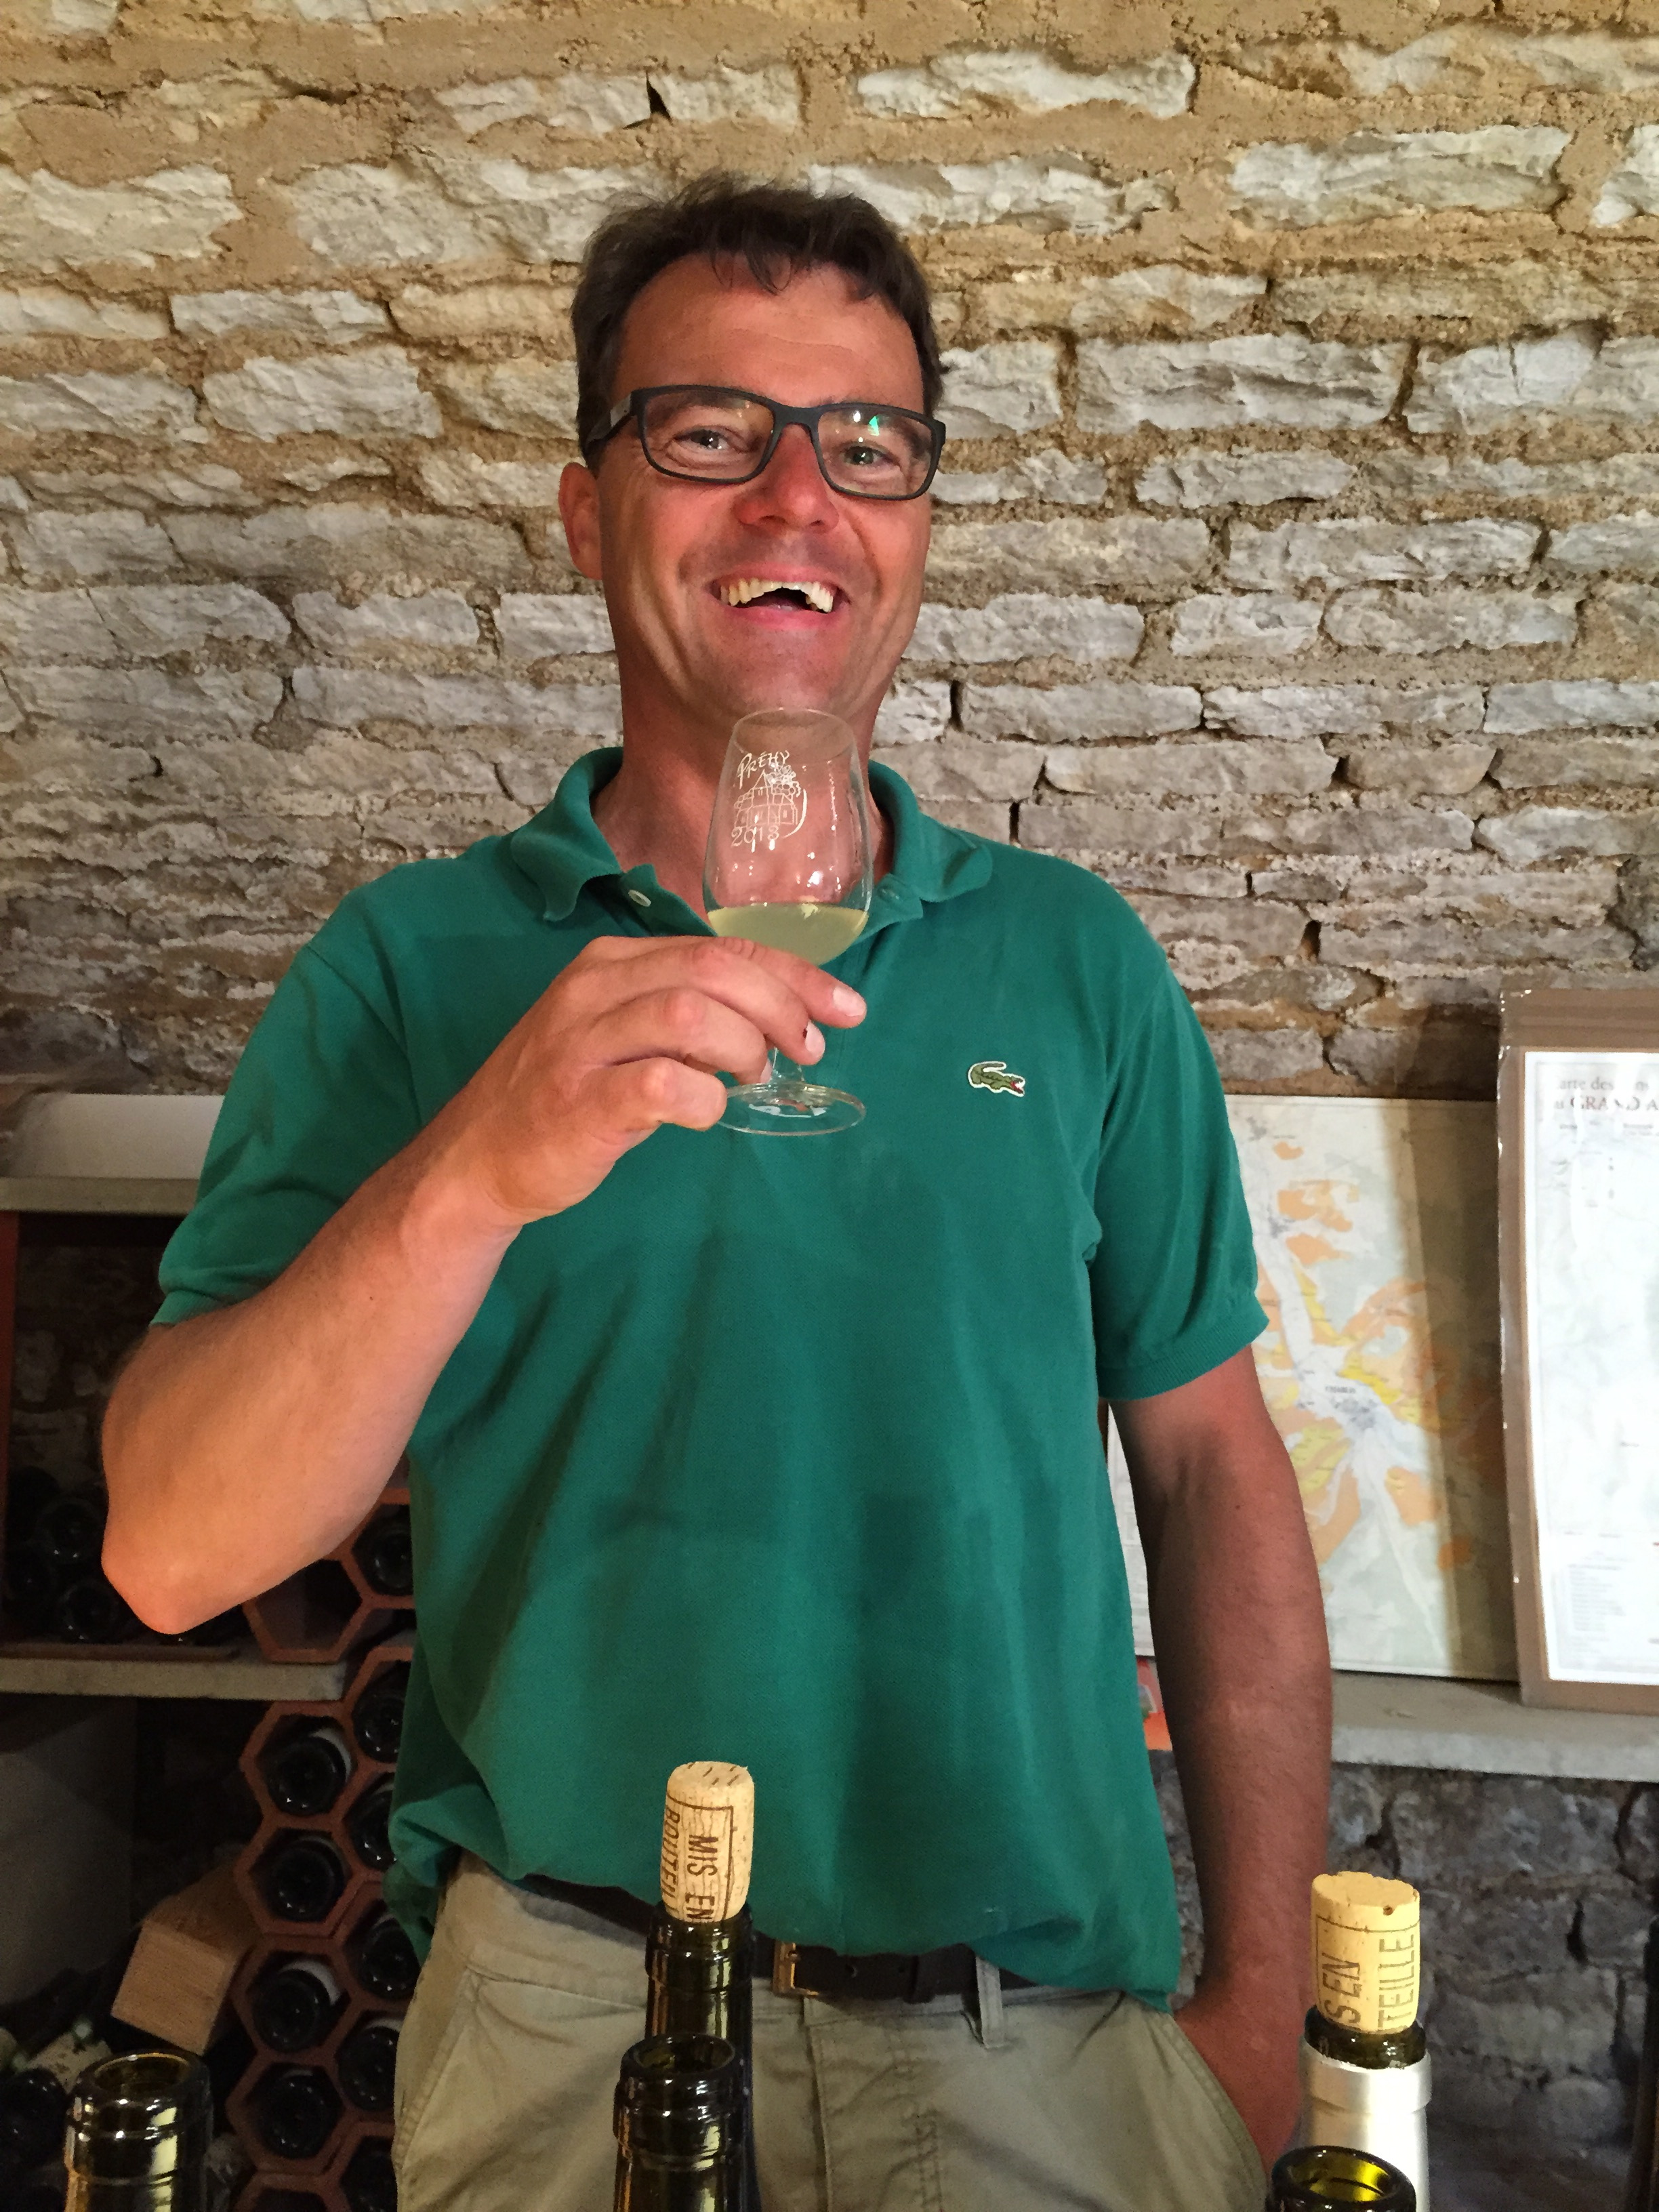 Tasting in the cellar with Frédéric Gueguen